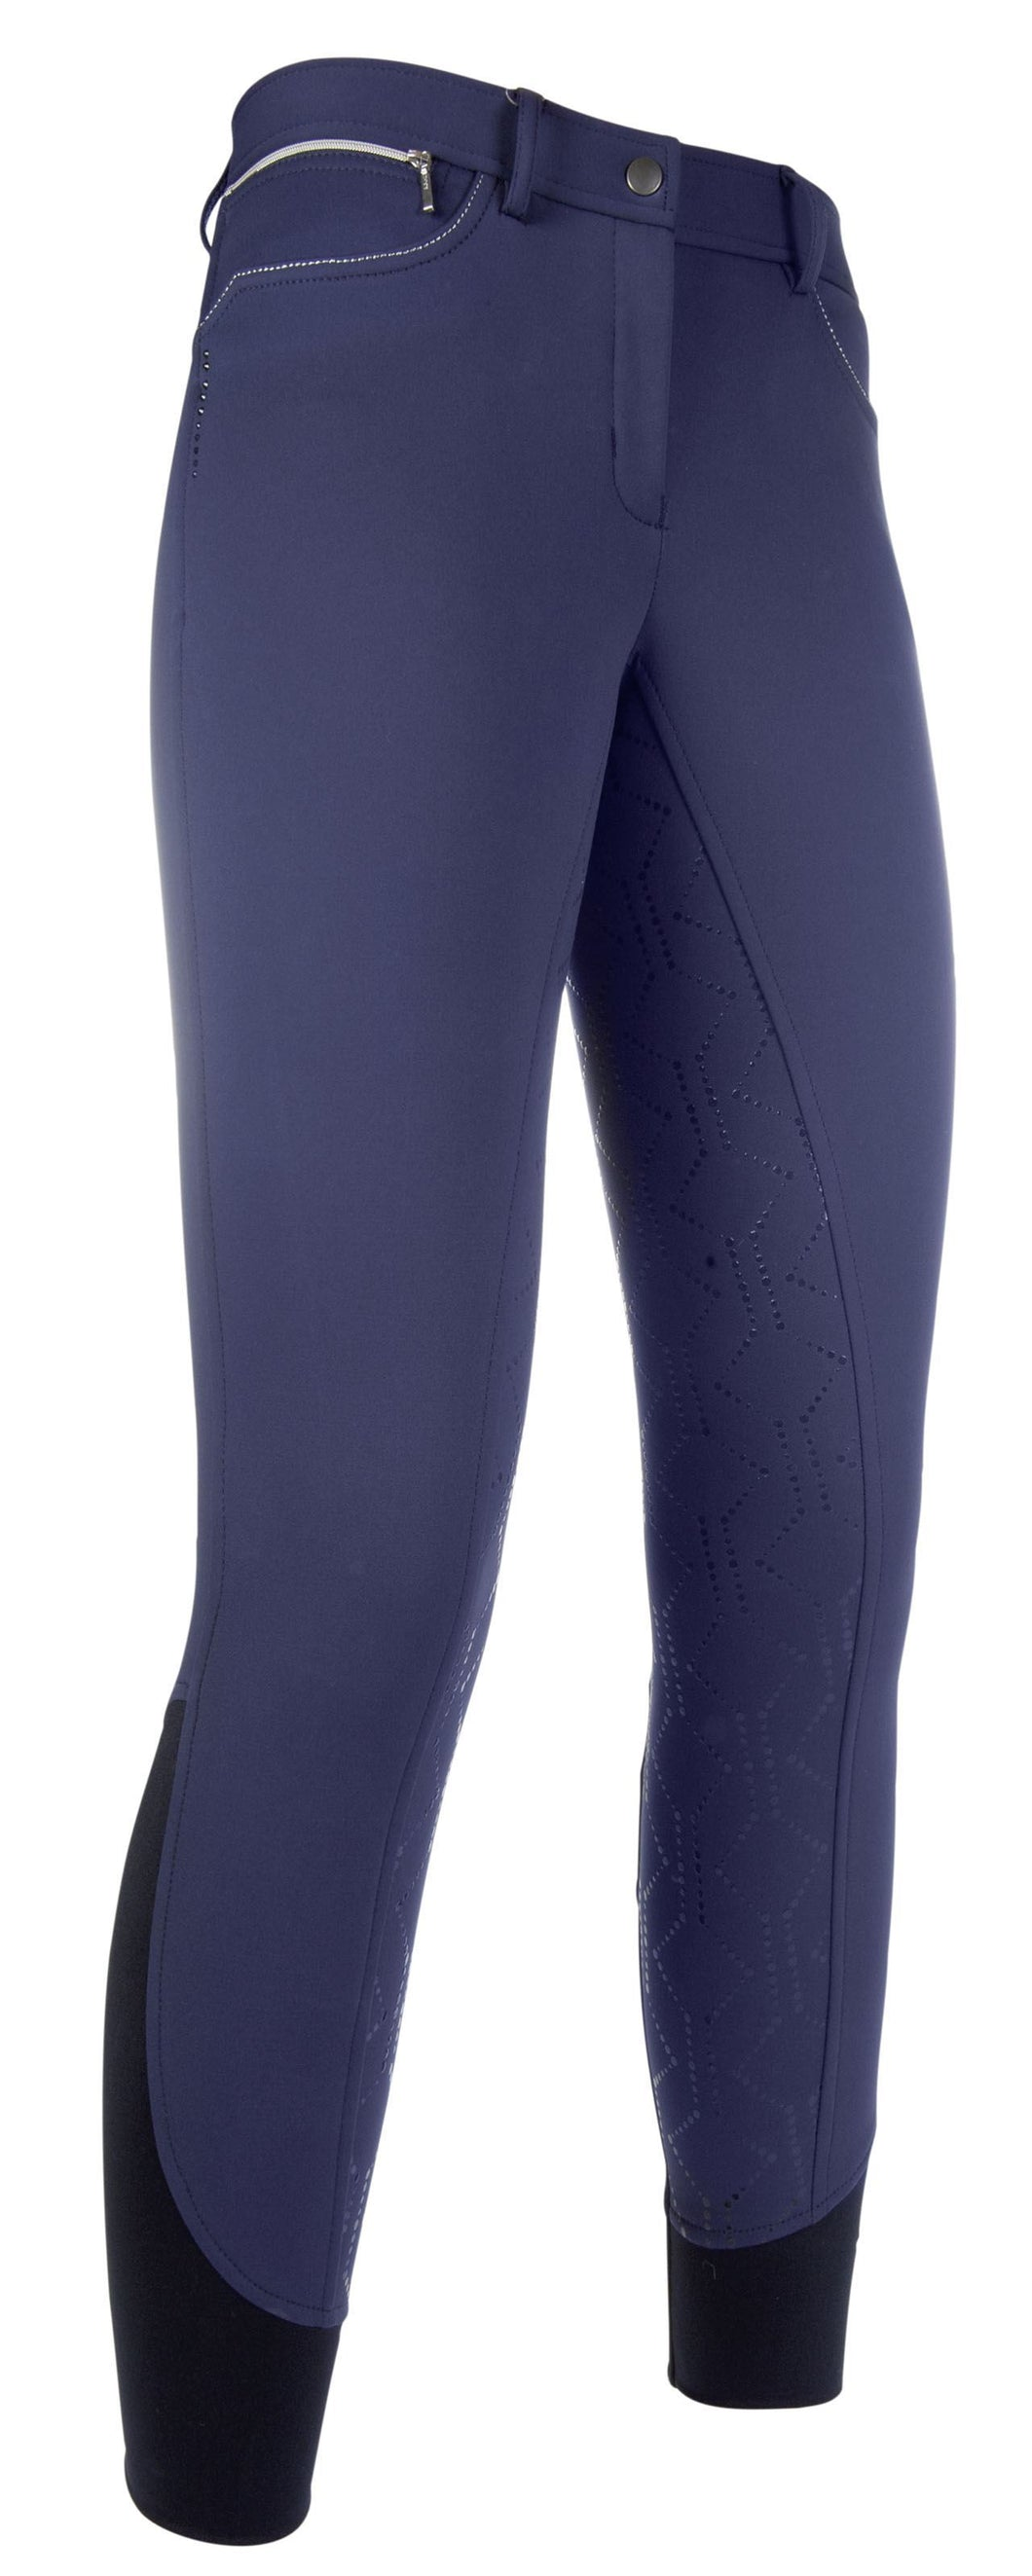 Softshell riding breeches -Style- silicone full se